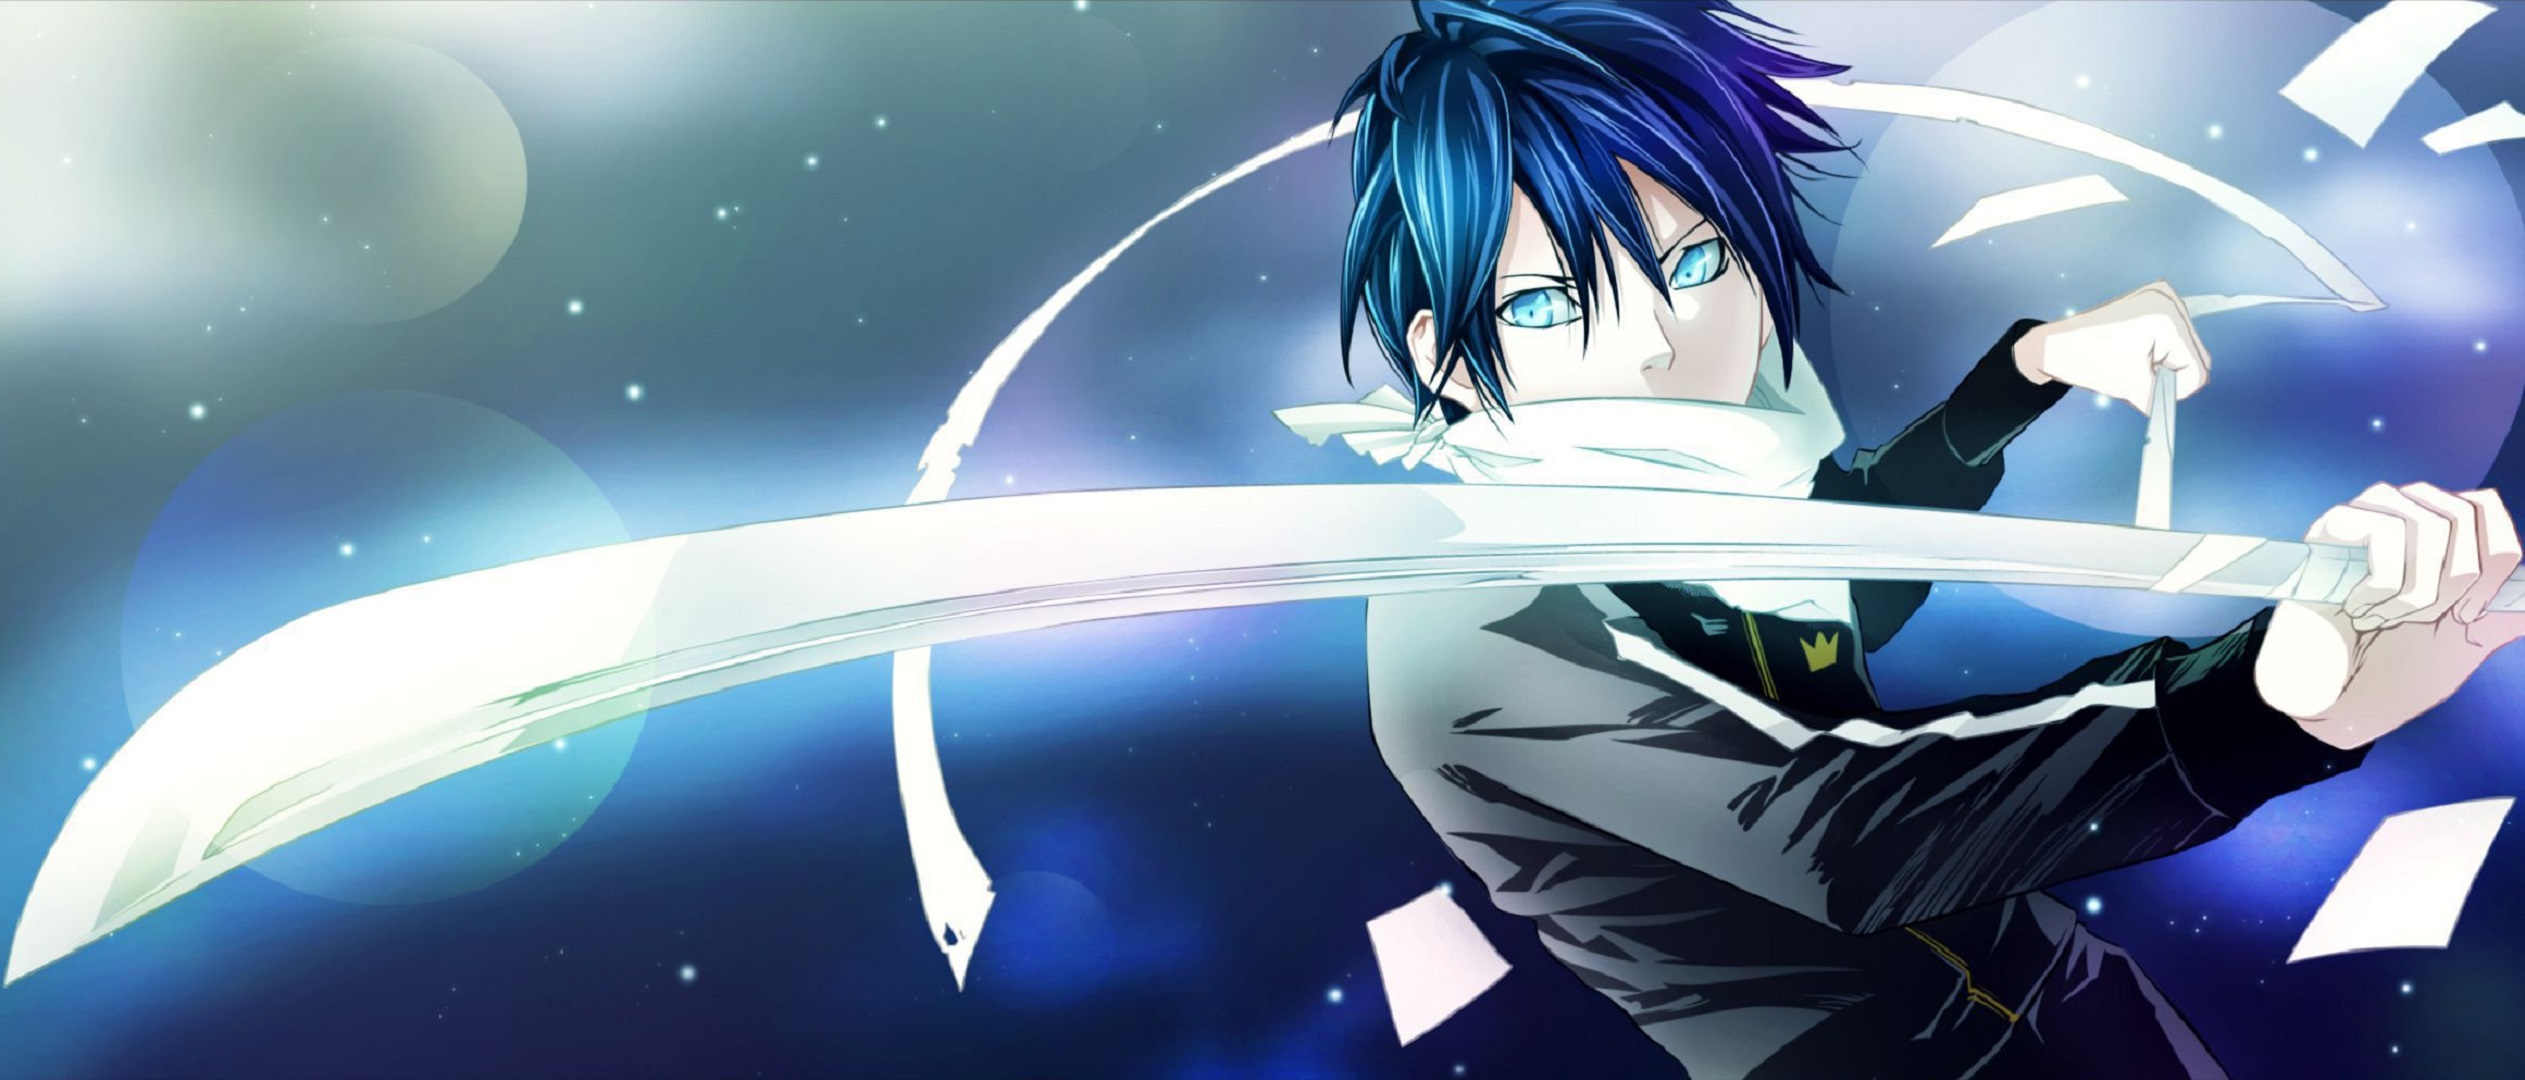 Yato High Quality Wallpapers